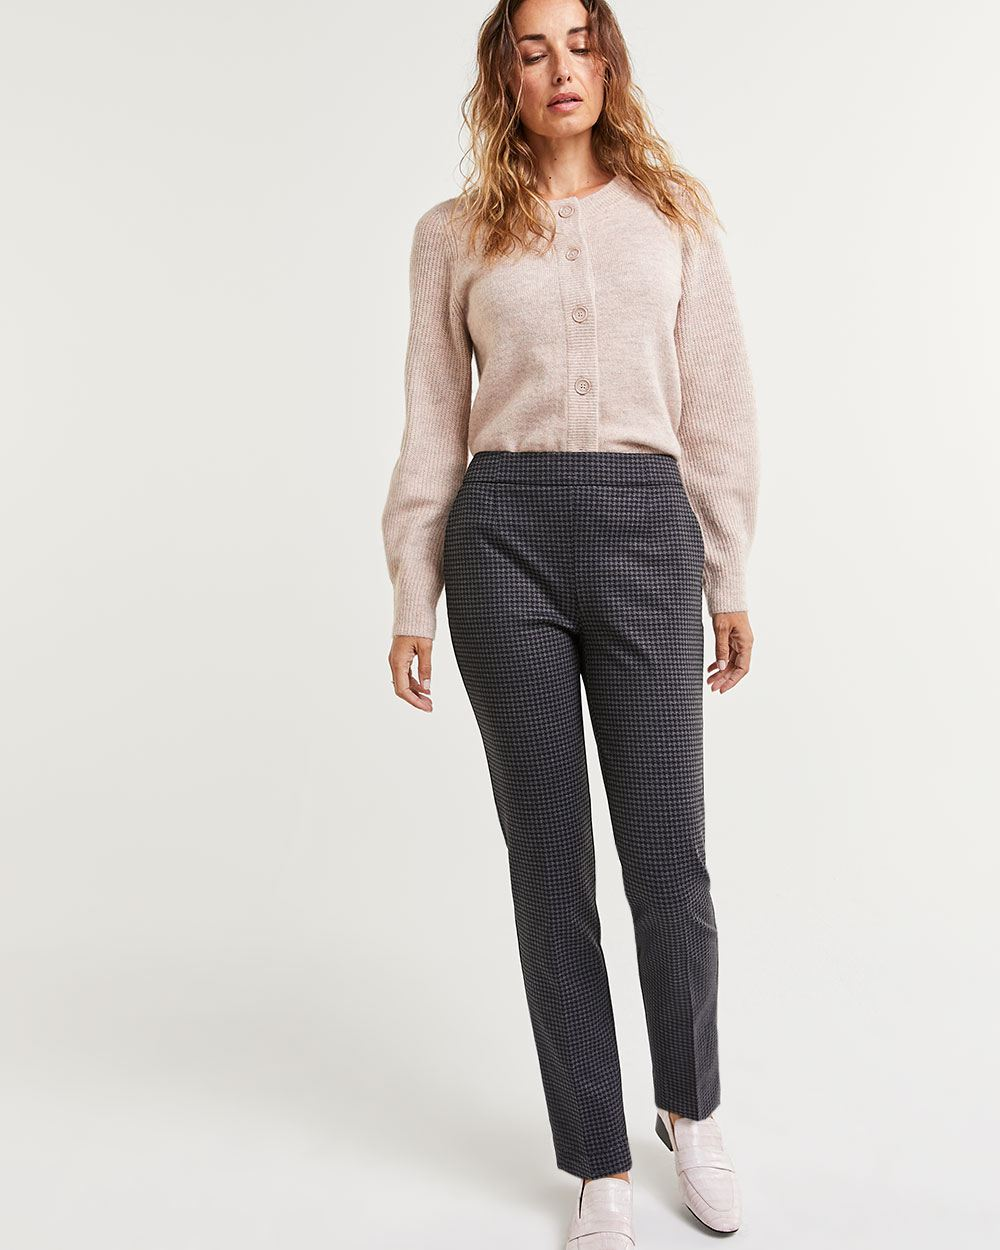 Straight Houndstooth Pants The Modern Stretch